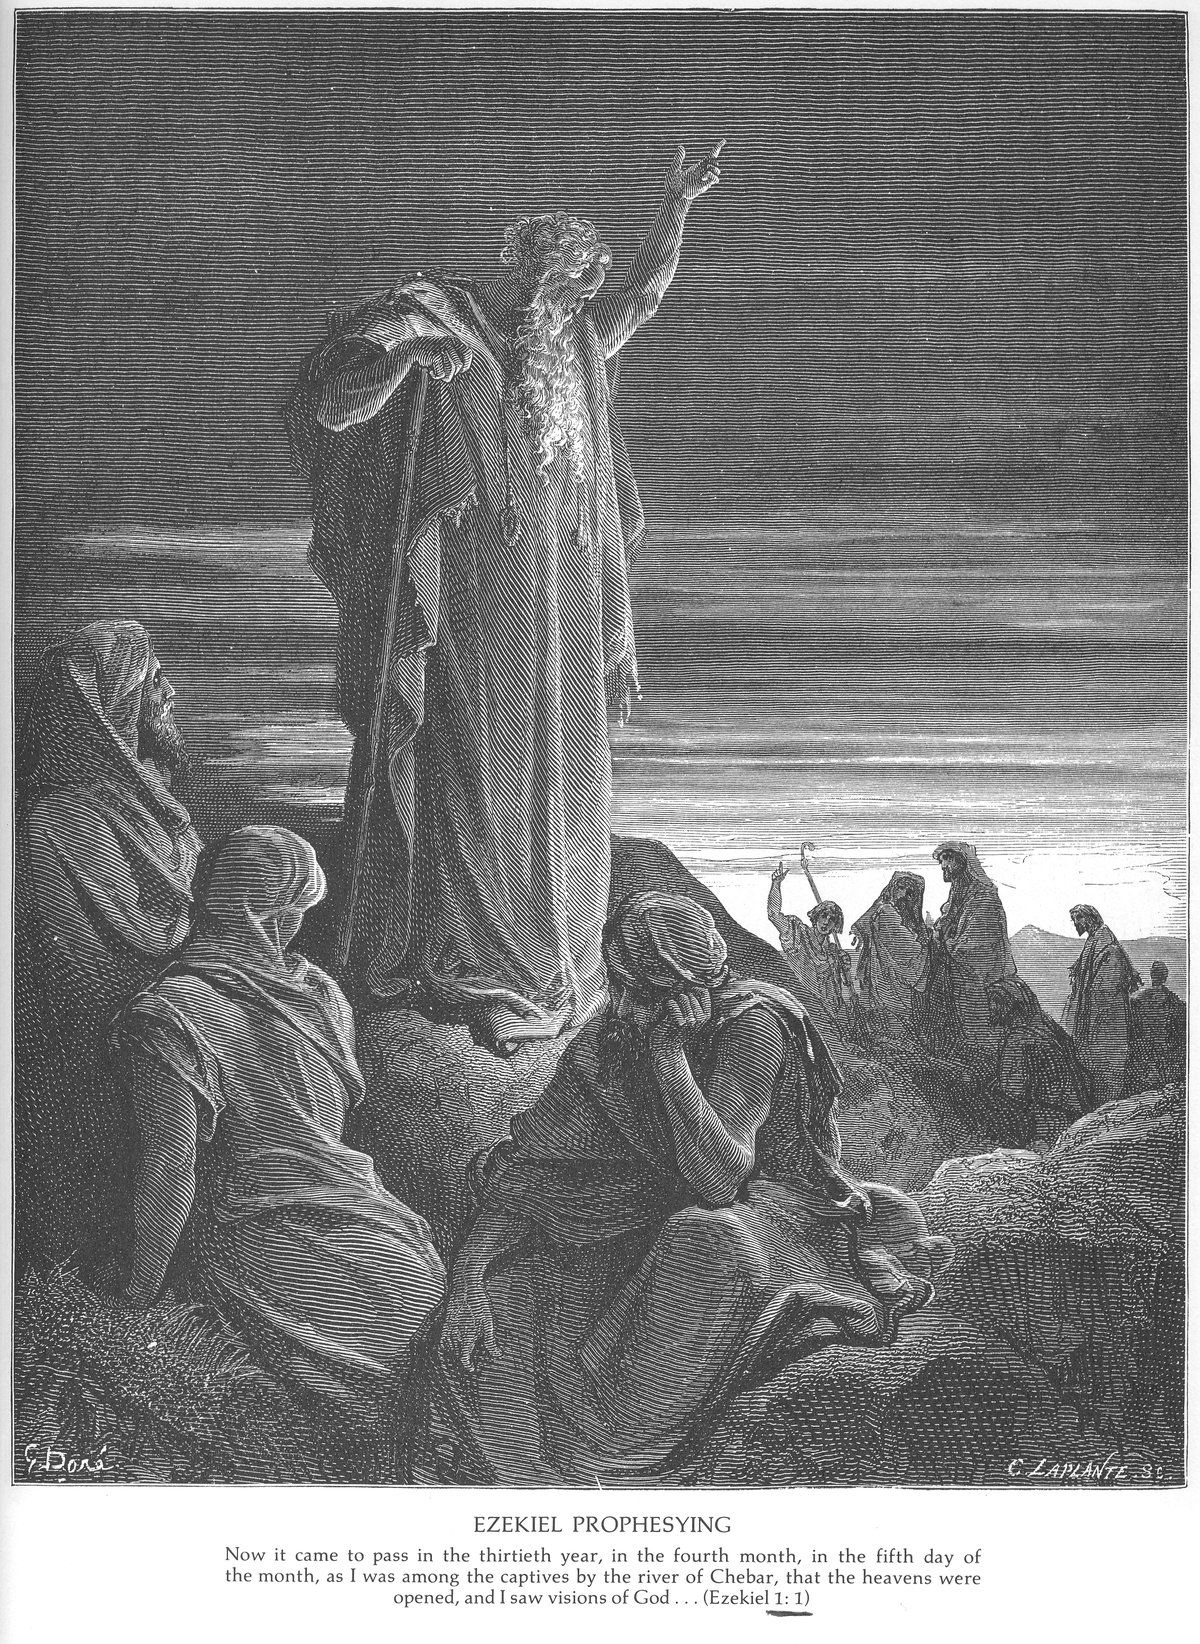 prophet ezekiel essay Of the oracle are found in the song of moses (deut 32:1-43)3 in this essay i will argue that ezekiel's depiction of israel in ch 16 (chiefly section a, vv 1-43) 4 rep- resents a prophetic transformation of the rise and decline of israel depicted in the.